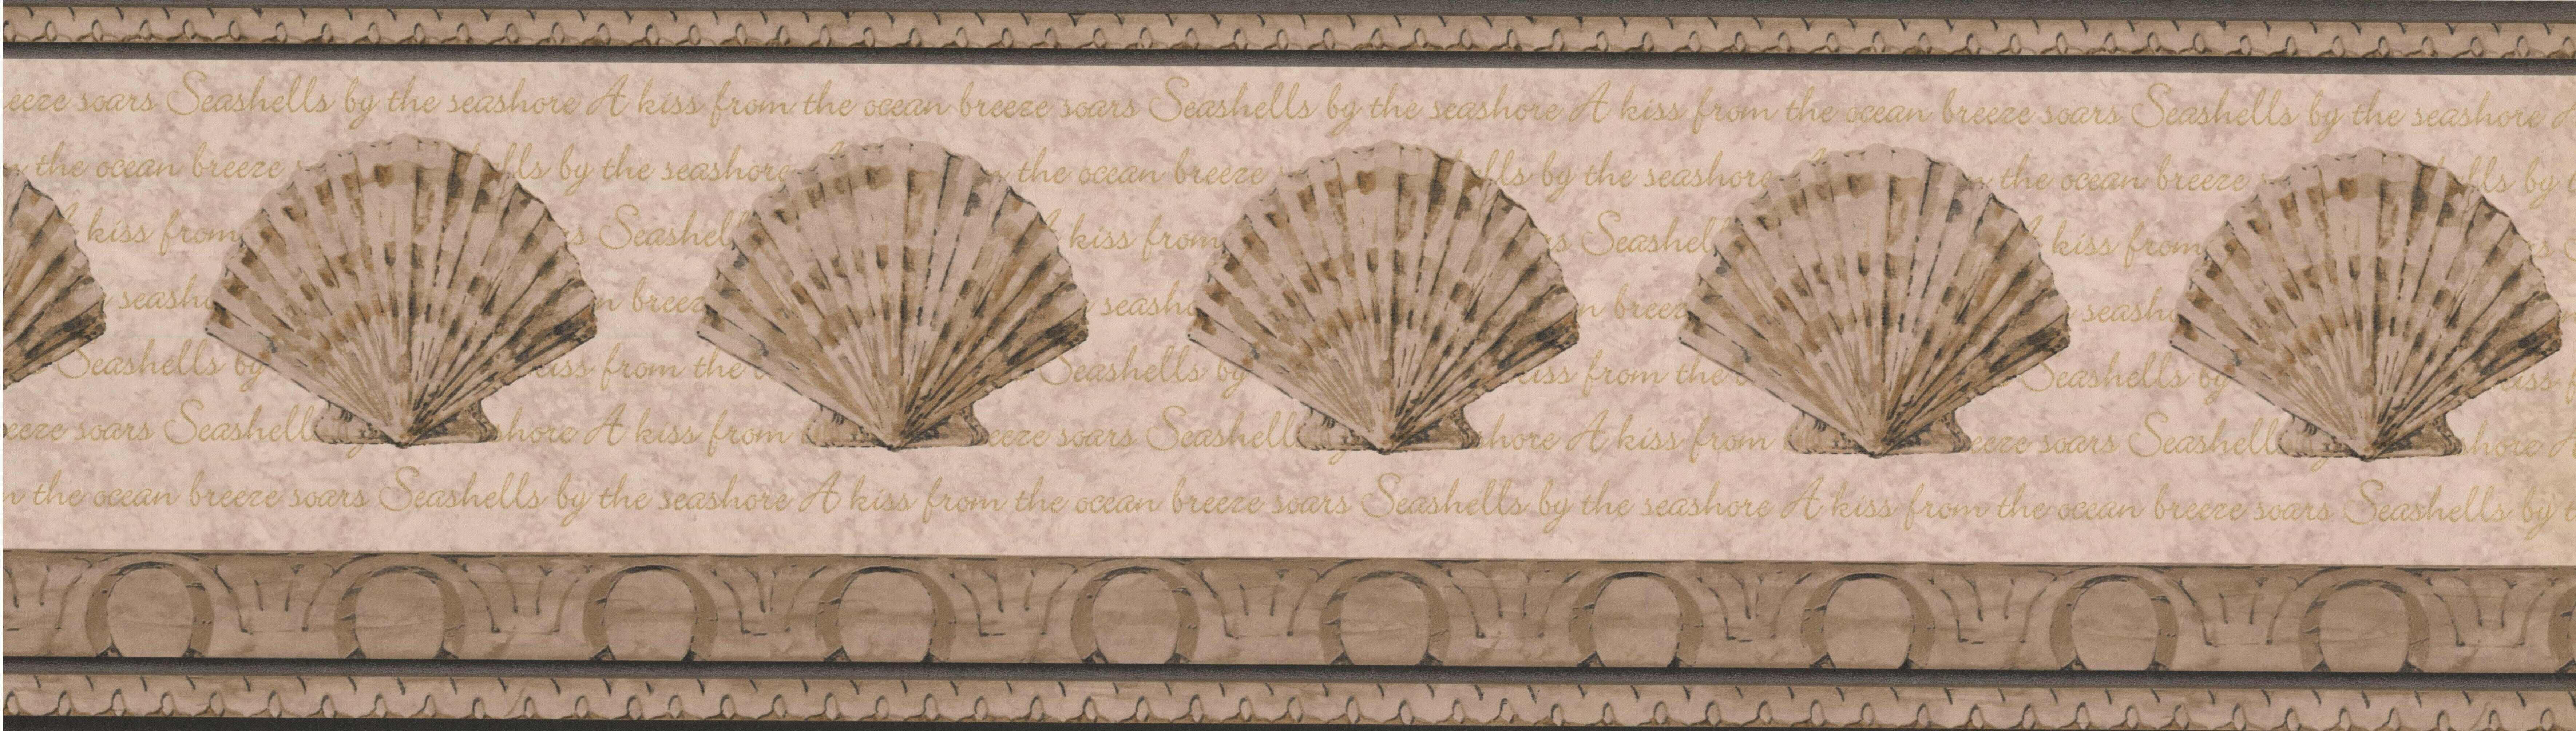 Wallpaper Borders Sea Shells In Frames With Conch Shells And